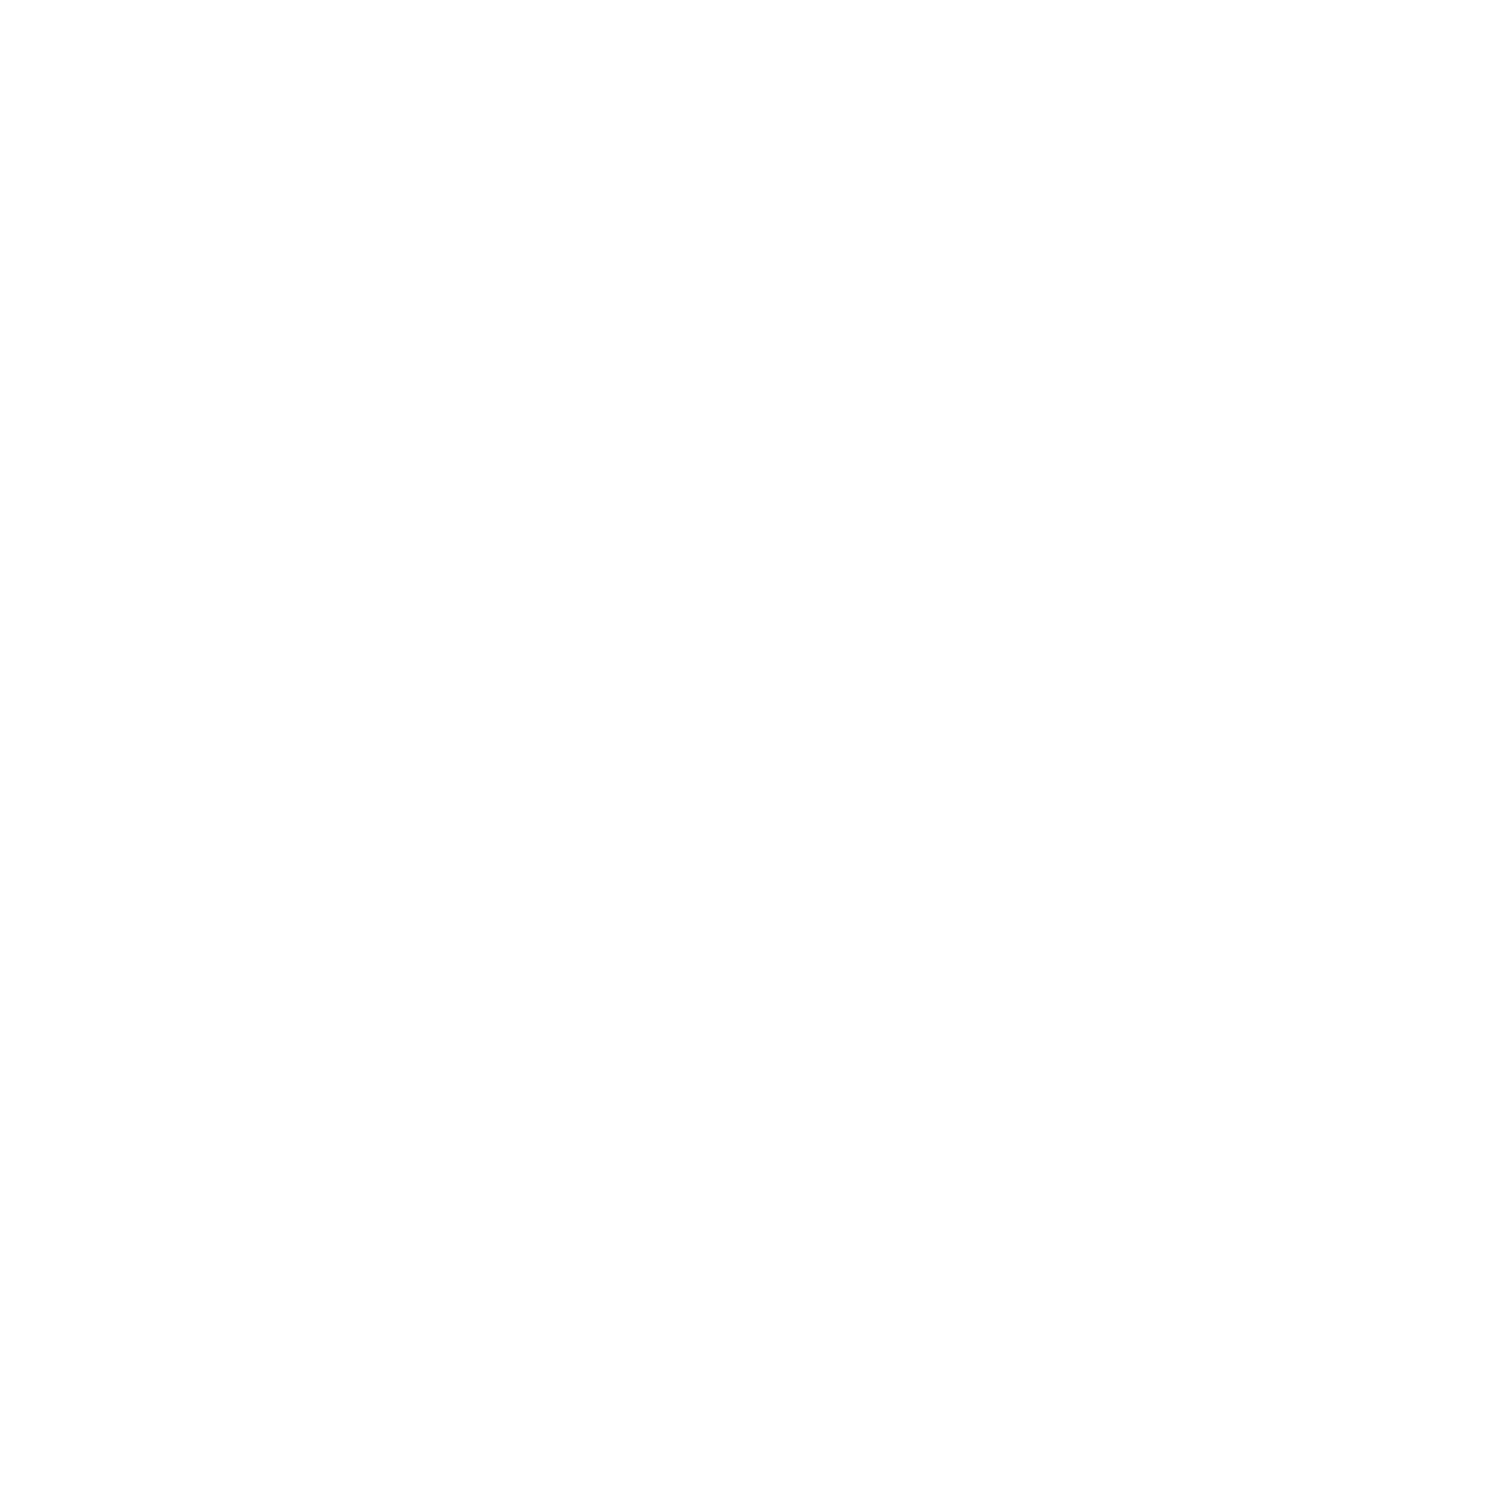 manuel thome weddings